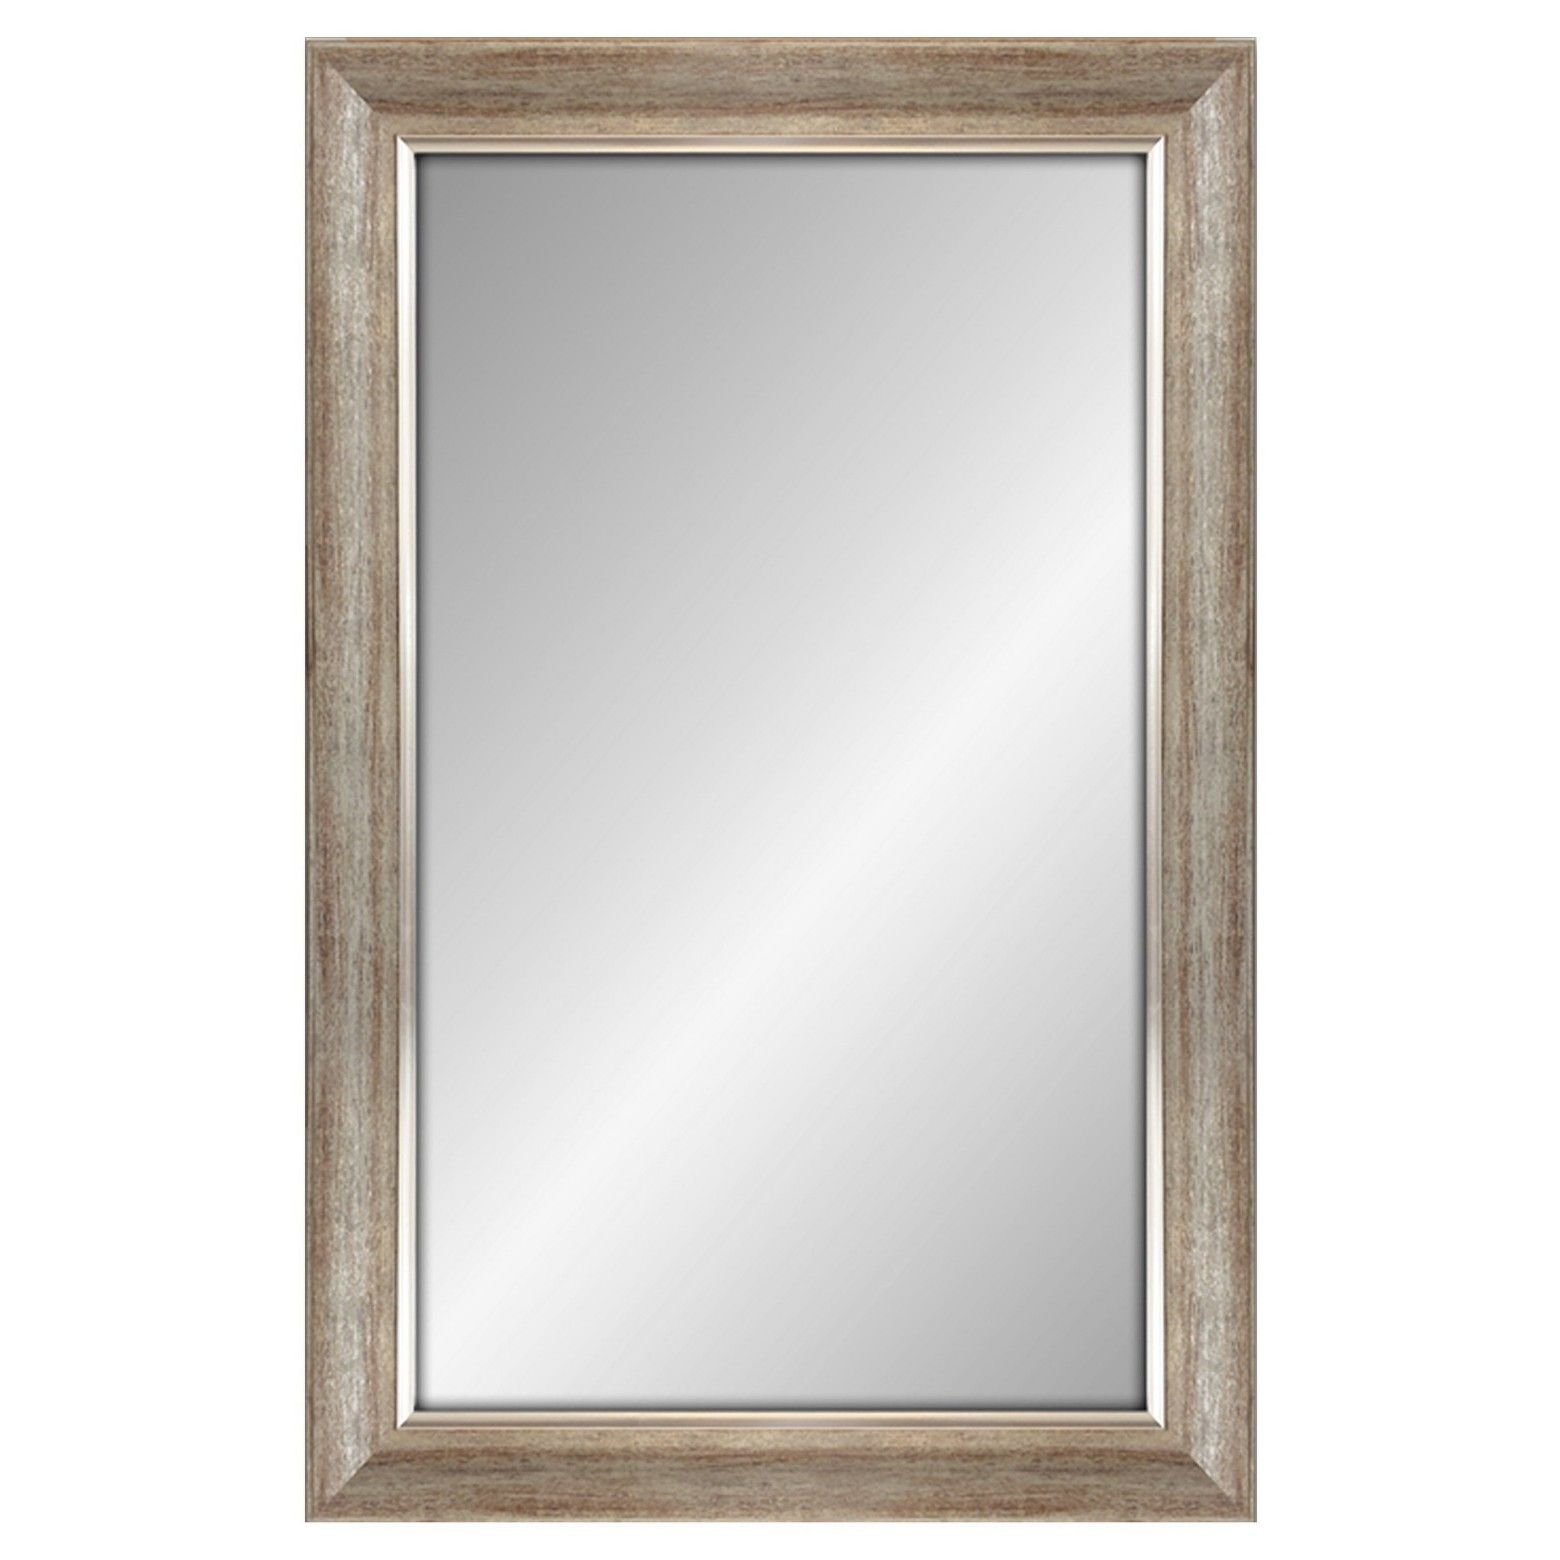 Rectangular Mirror Dark Silvertone Finish With Silver Filet With Regard To Modern Rectangle Wall Mirrors (View 13 of 20)